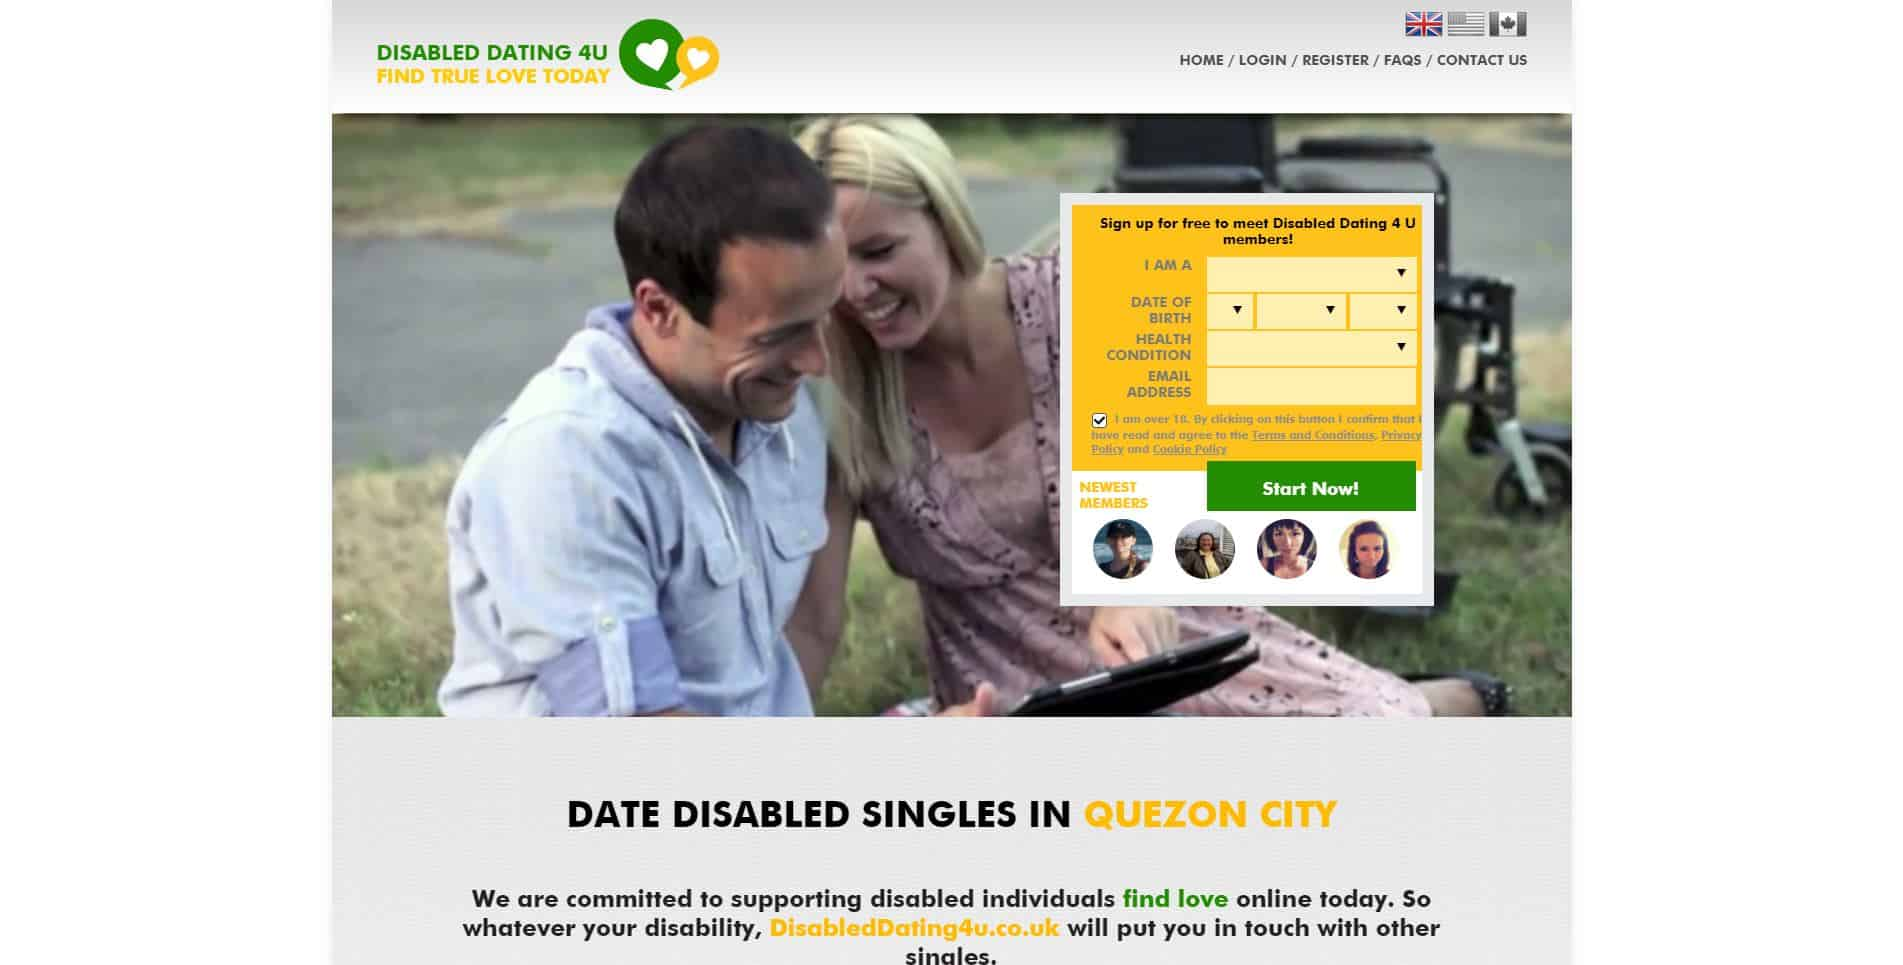 disabled dating4u-min